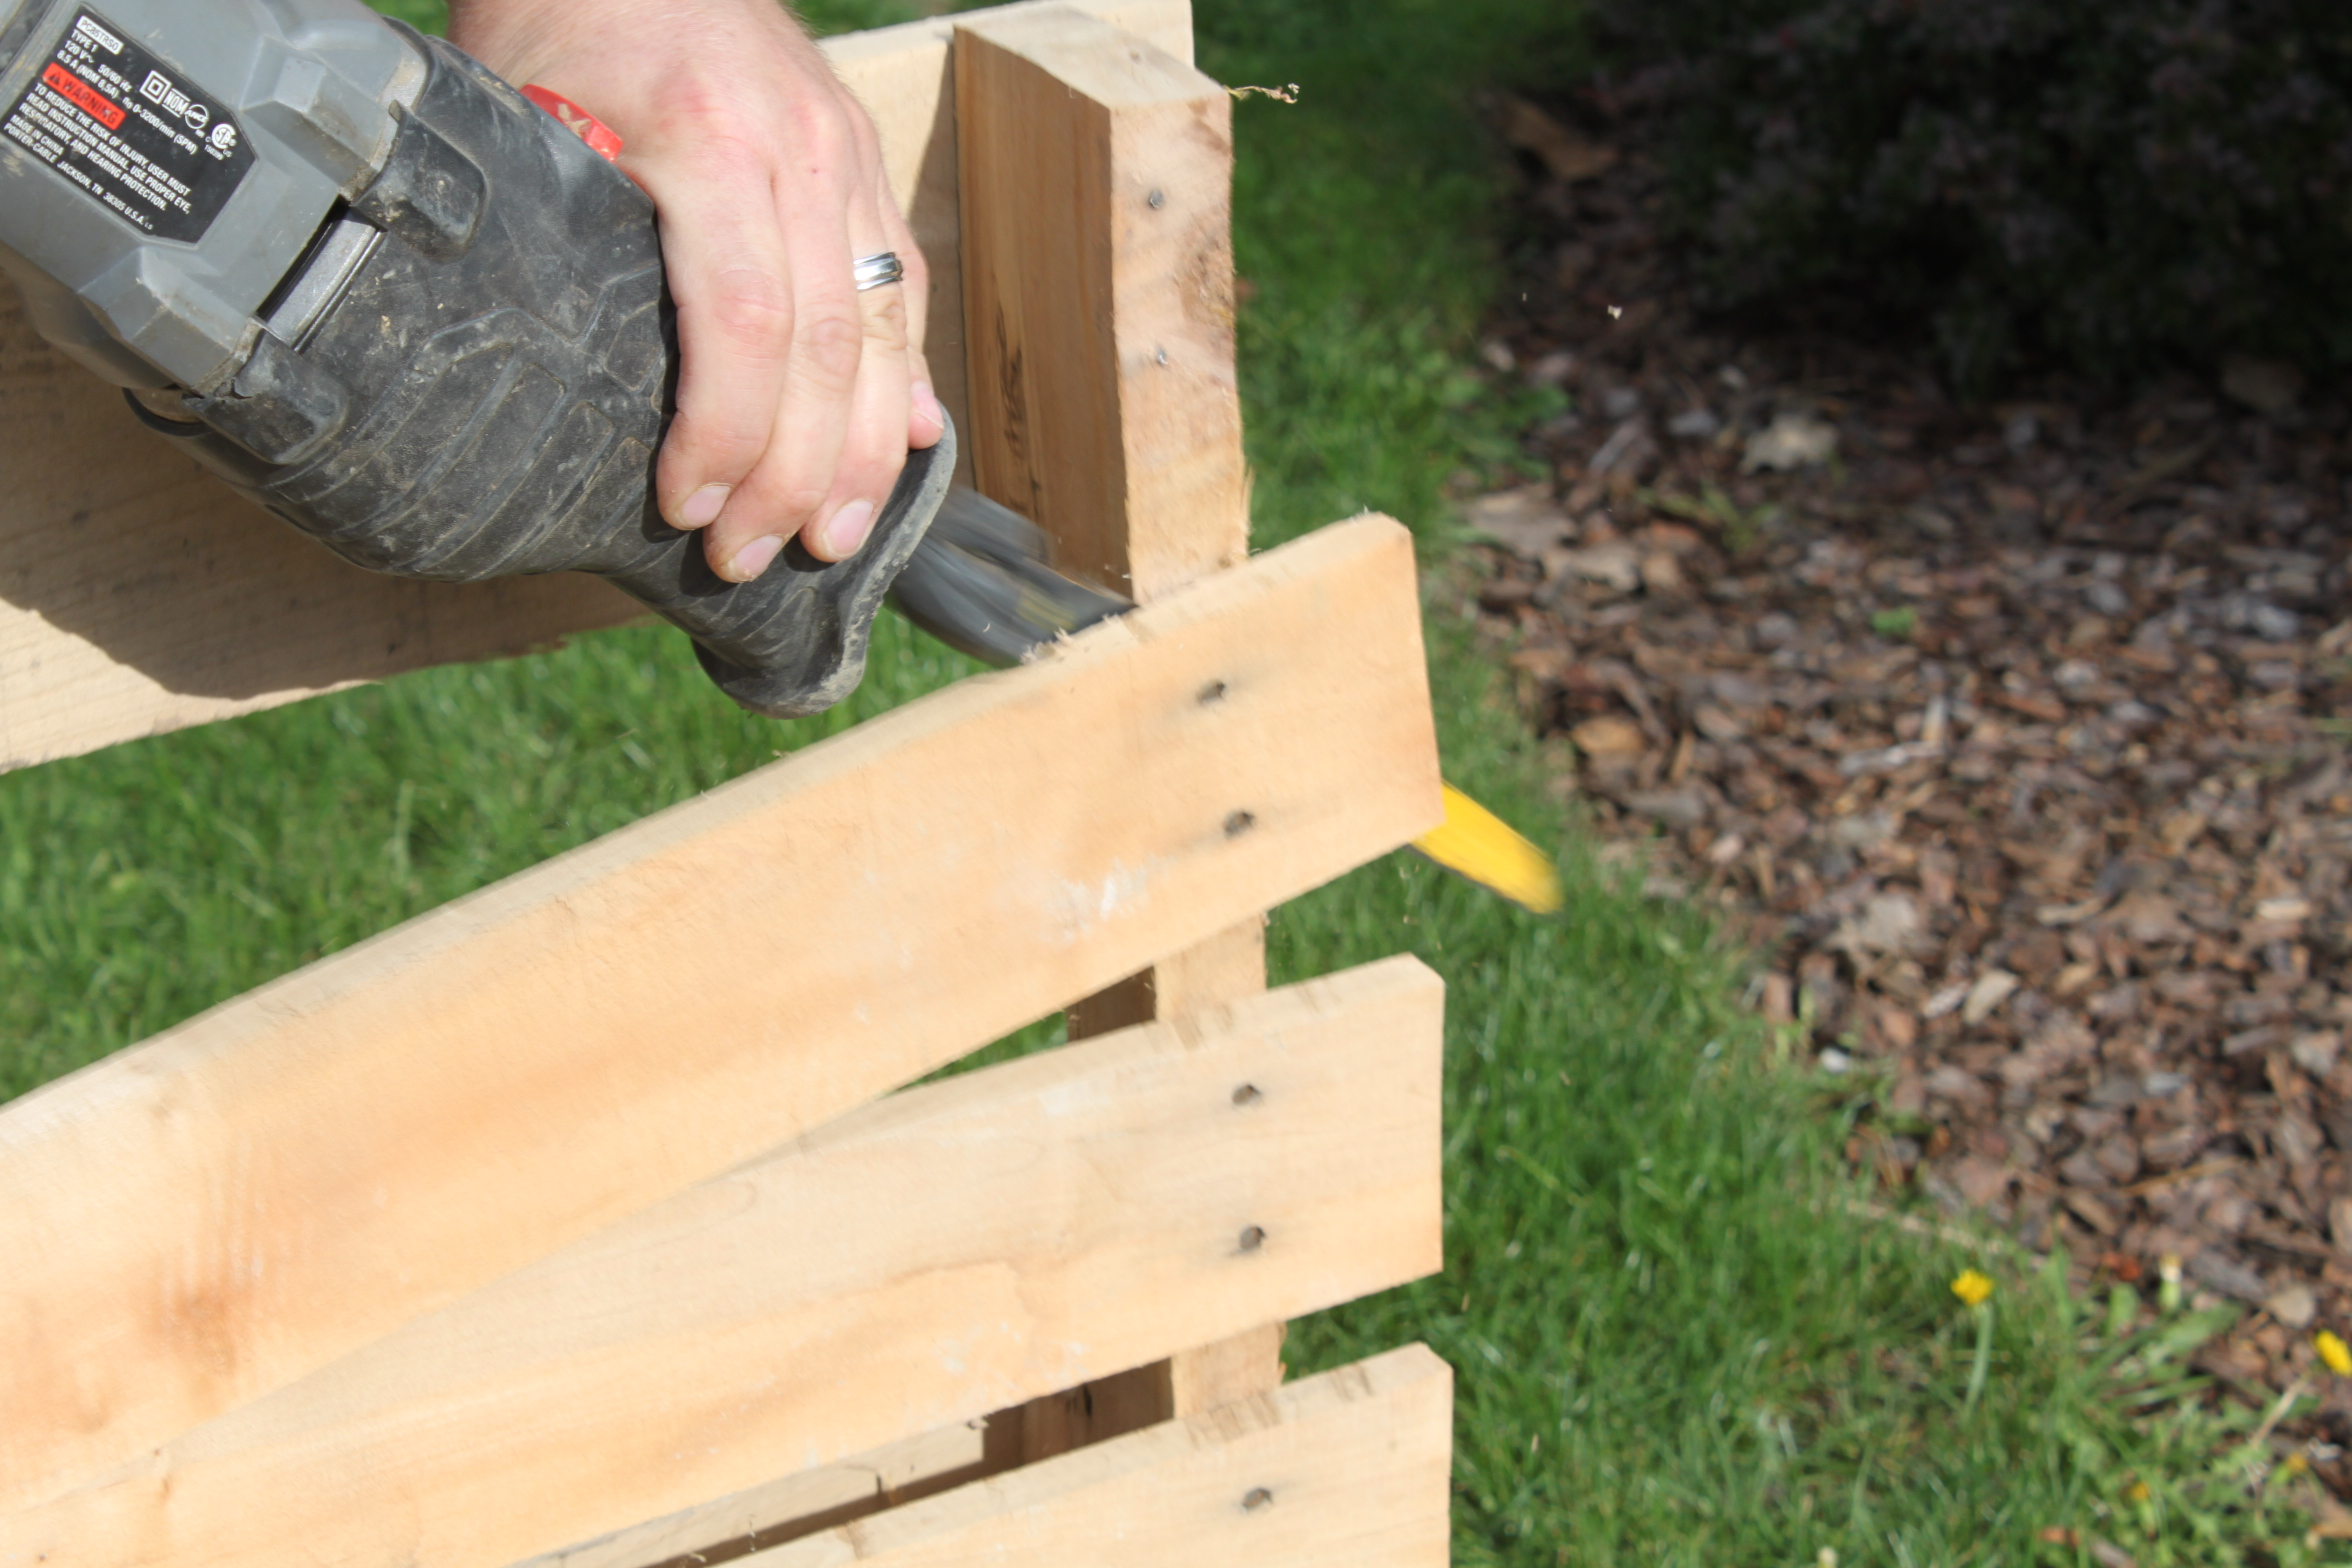 How To Disassemble A Pallet In Less Than 2 Minutes With Ease